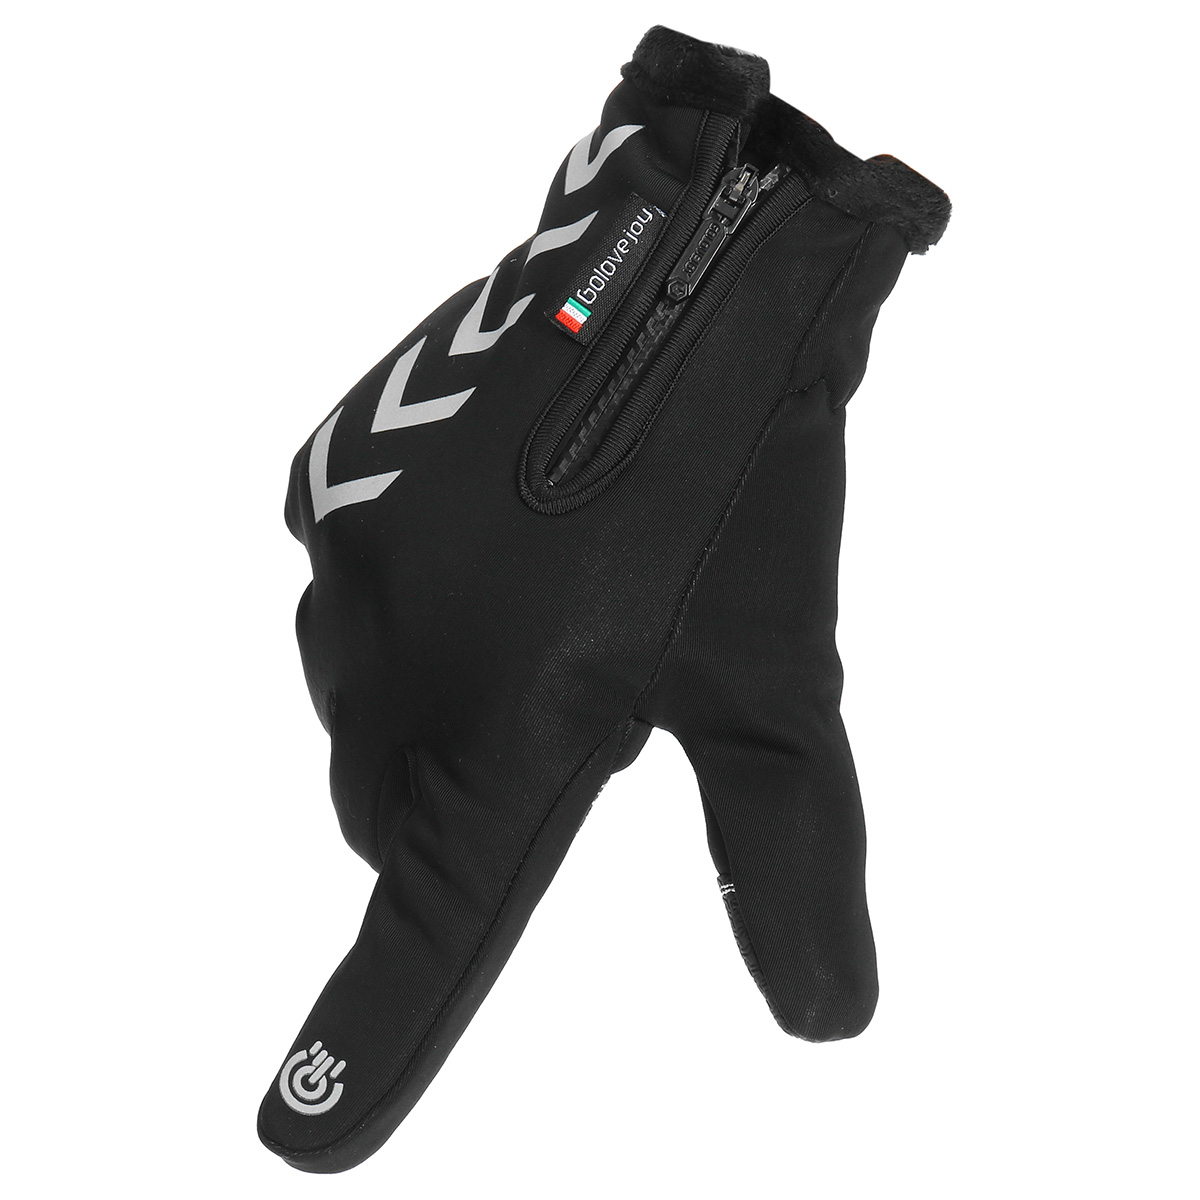 Winter Warm Touch Screen Full Finger Gloves Reflective Strip Windproof Anti slip Cycling Thermal Bike Glove